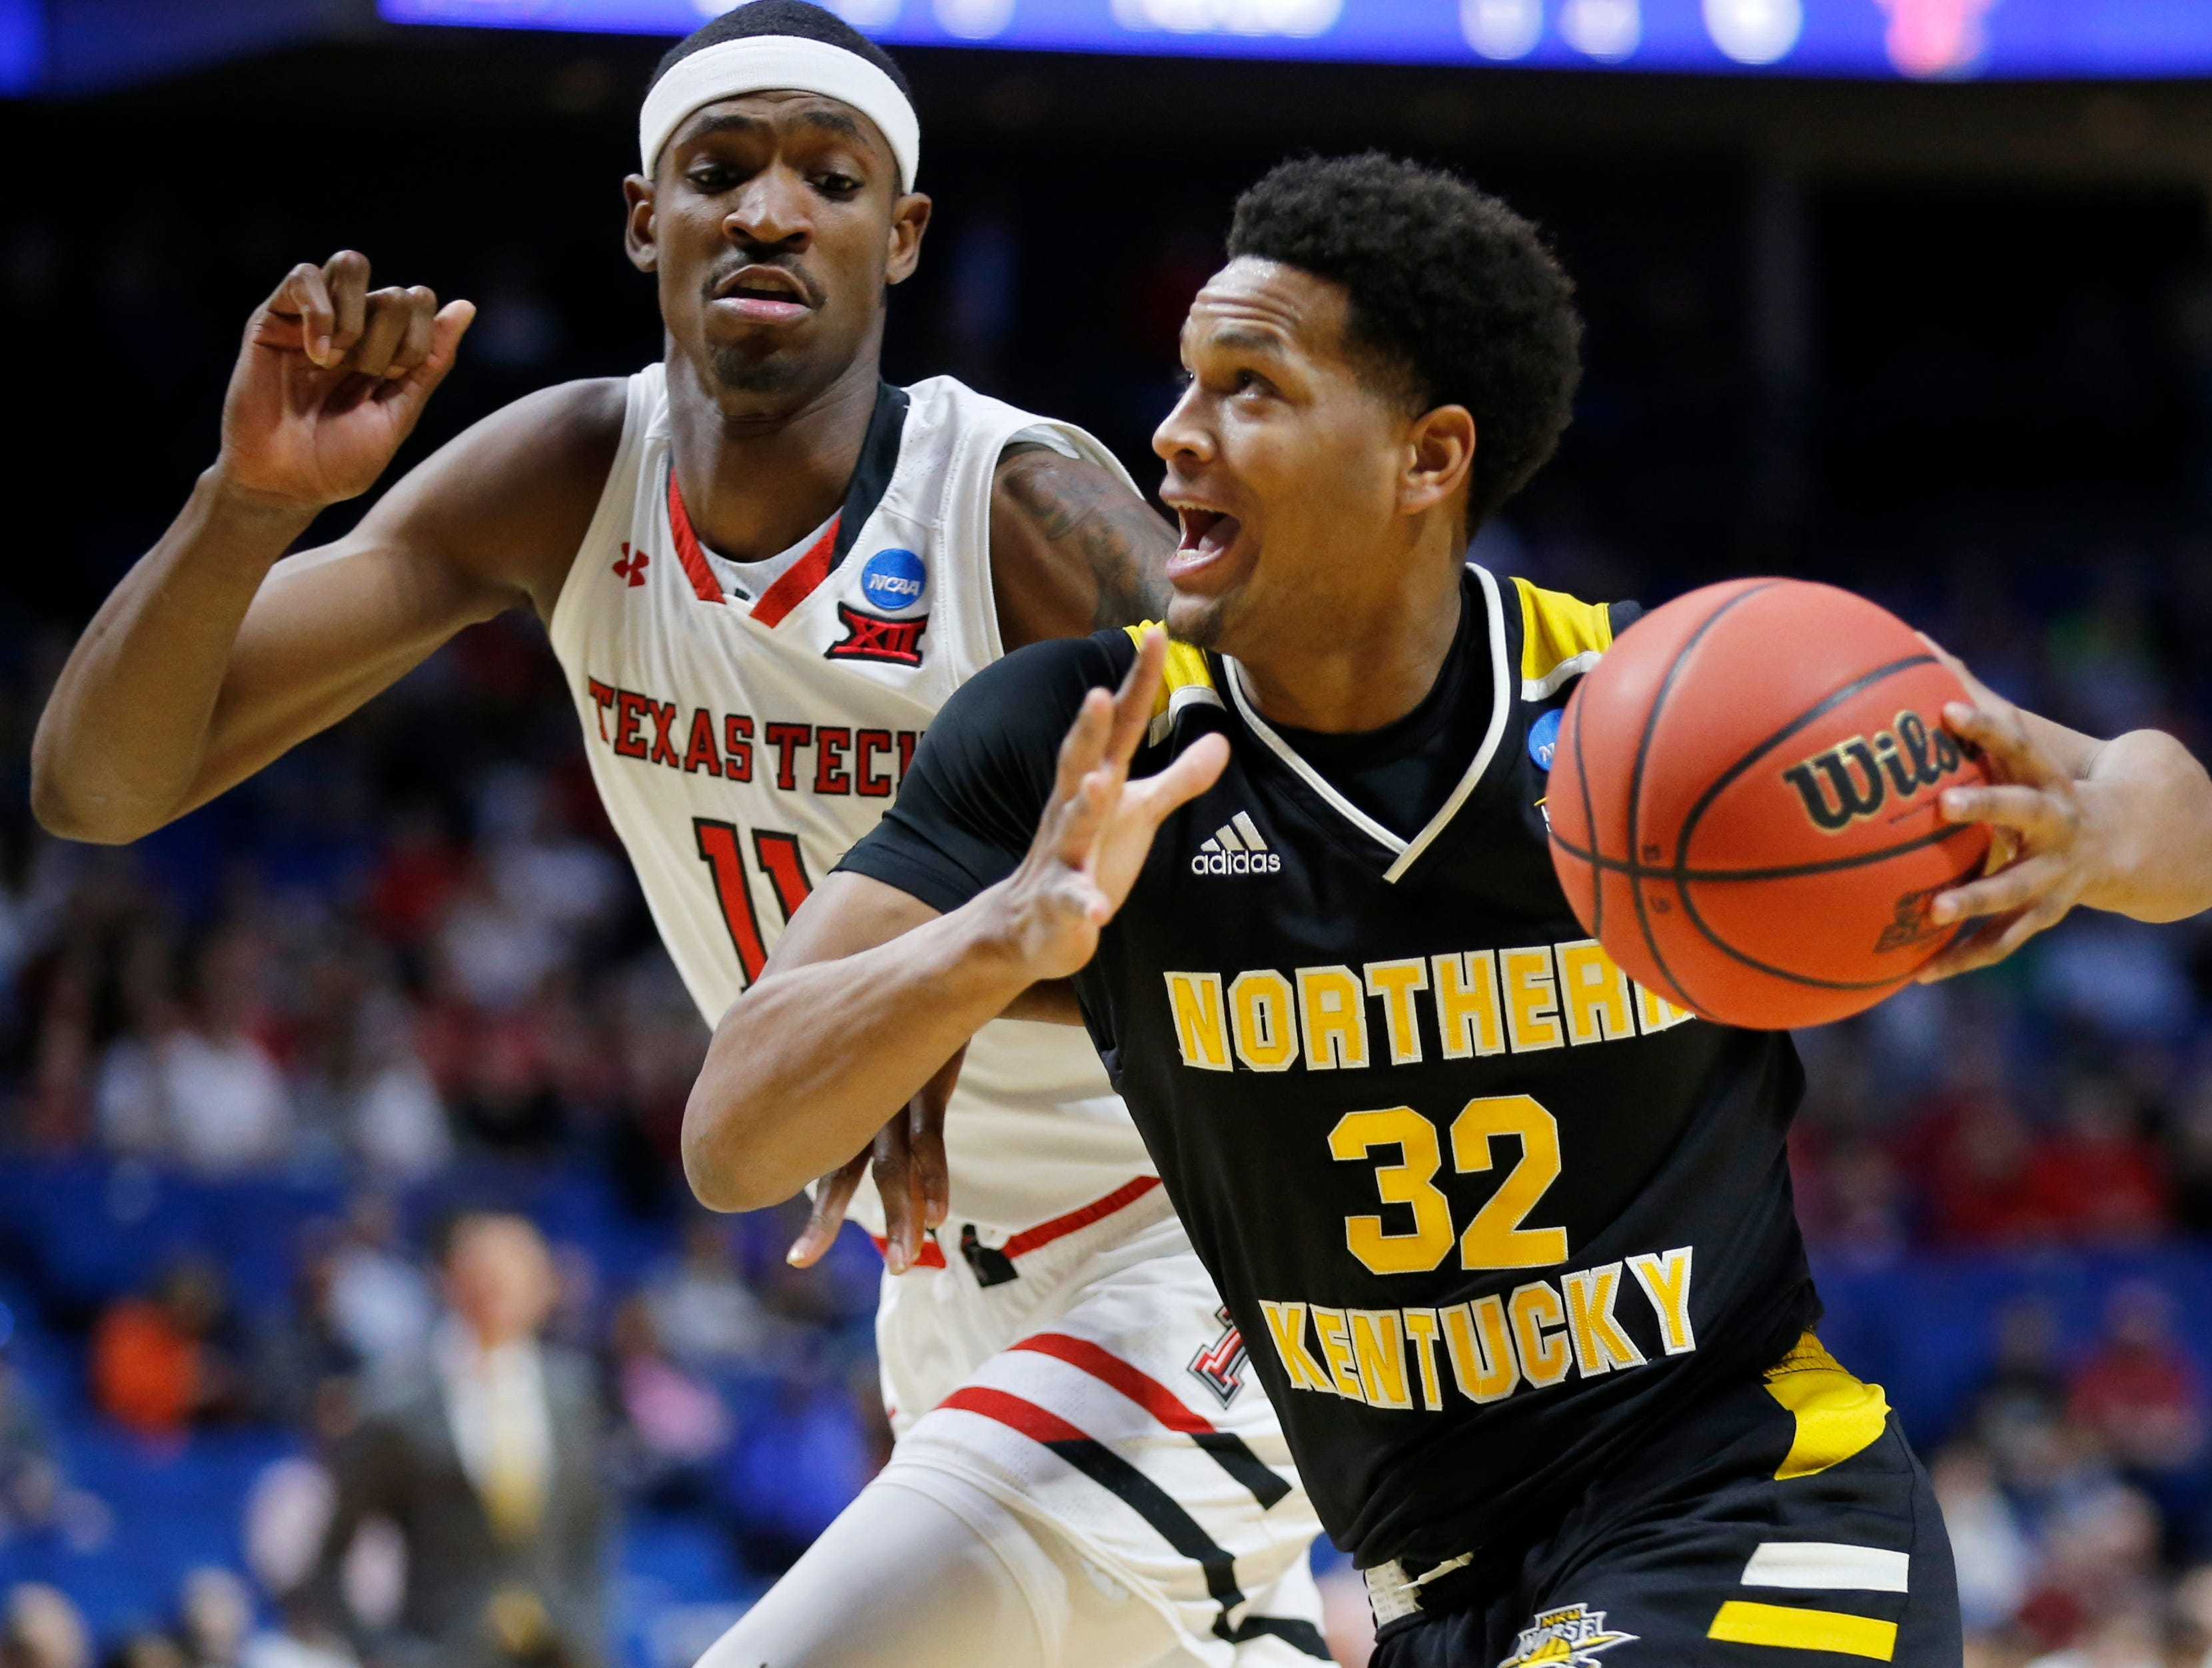 Northern Kentucky Norse forward Dantez Walton (32) drives against Texas Tech Red Raiders forward Tariq Owens (11) in the first half of the NCAA Tournament First Round game between the 14-seeded Northern Kentucky Norse and the 3-seeded Texas Tech Red Raiders the BOK Center in downtown Tulsa on Friday, March 22, 2019. Texas Tech led 30-26 at halftime.